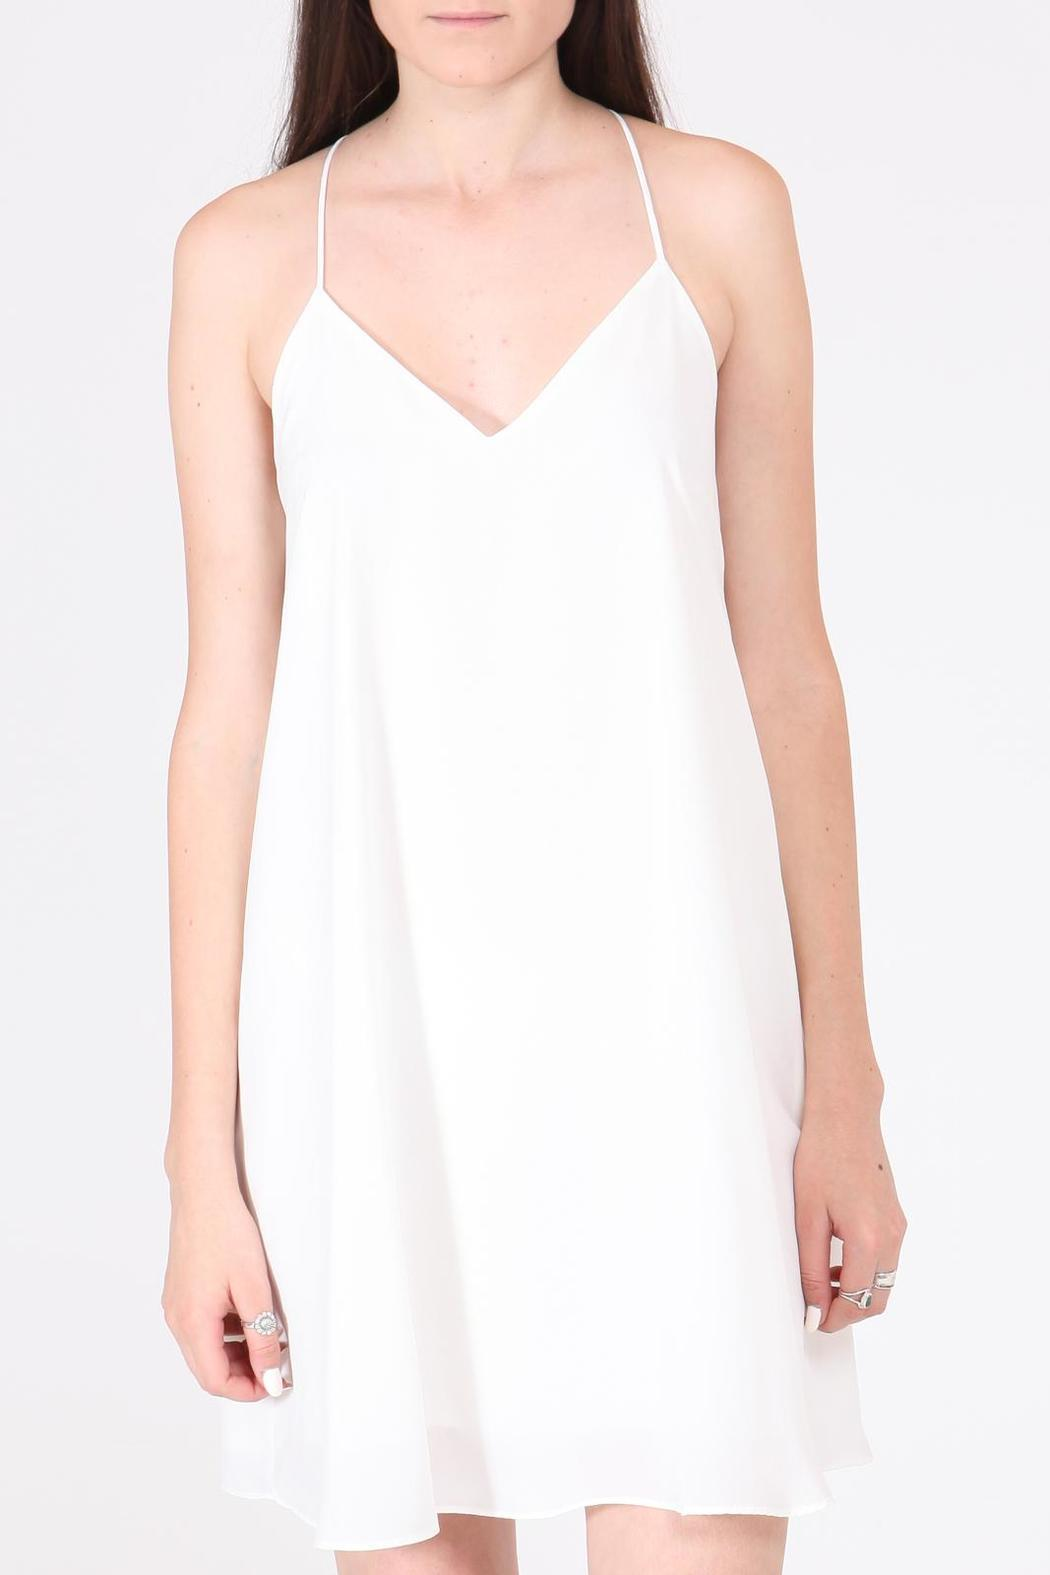 92ea073c9c8f8 Nymphe Camisole Swing Dress from Los Angeles by Goldie's — Shoptiques